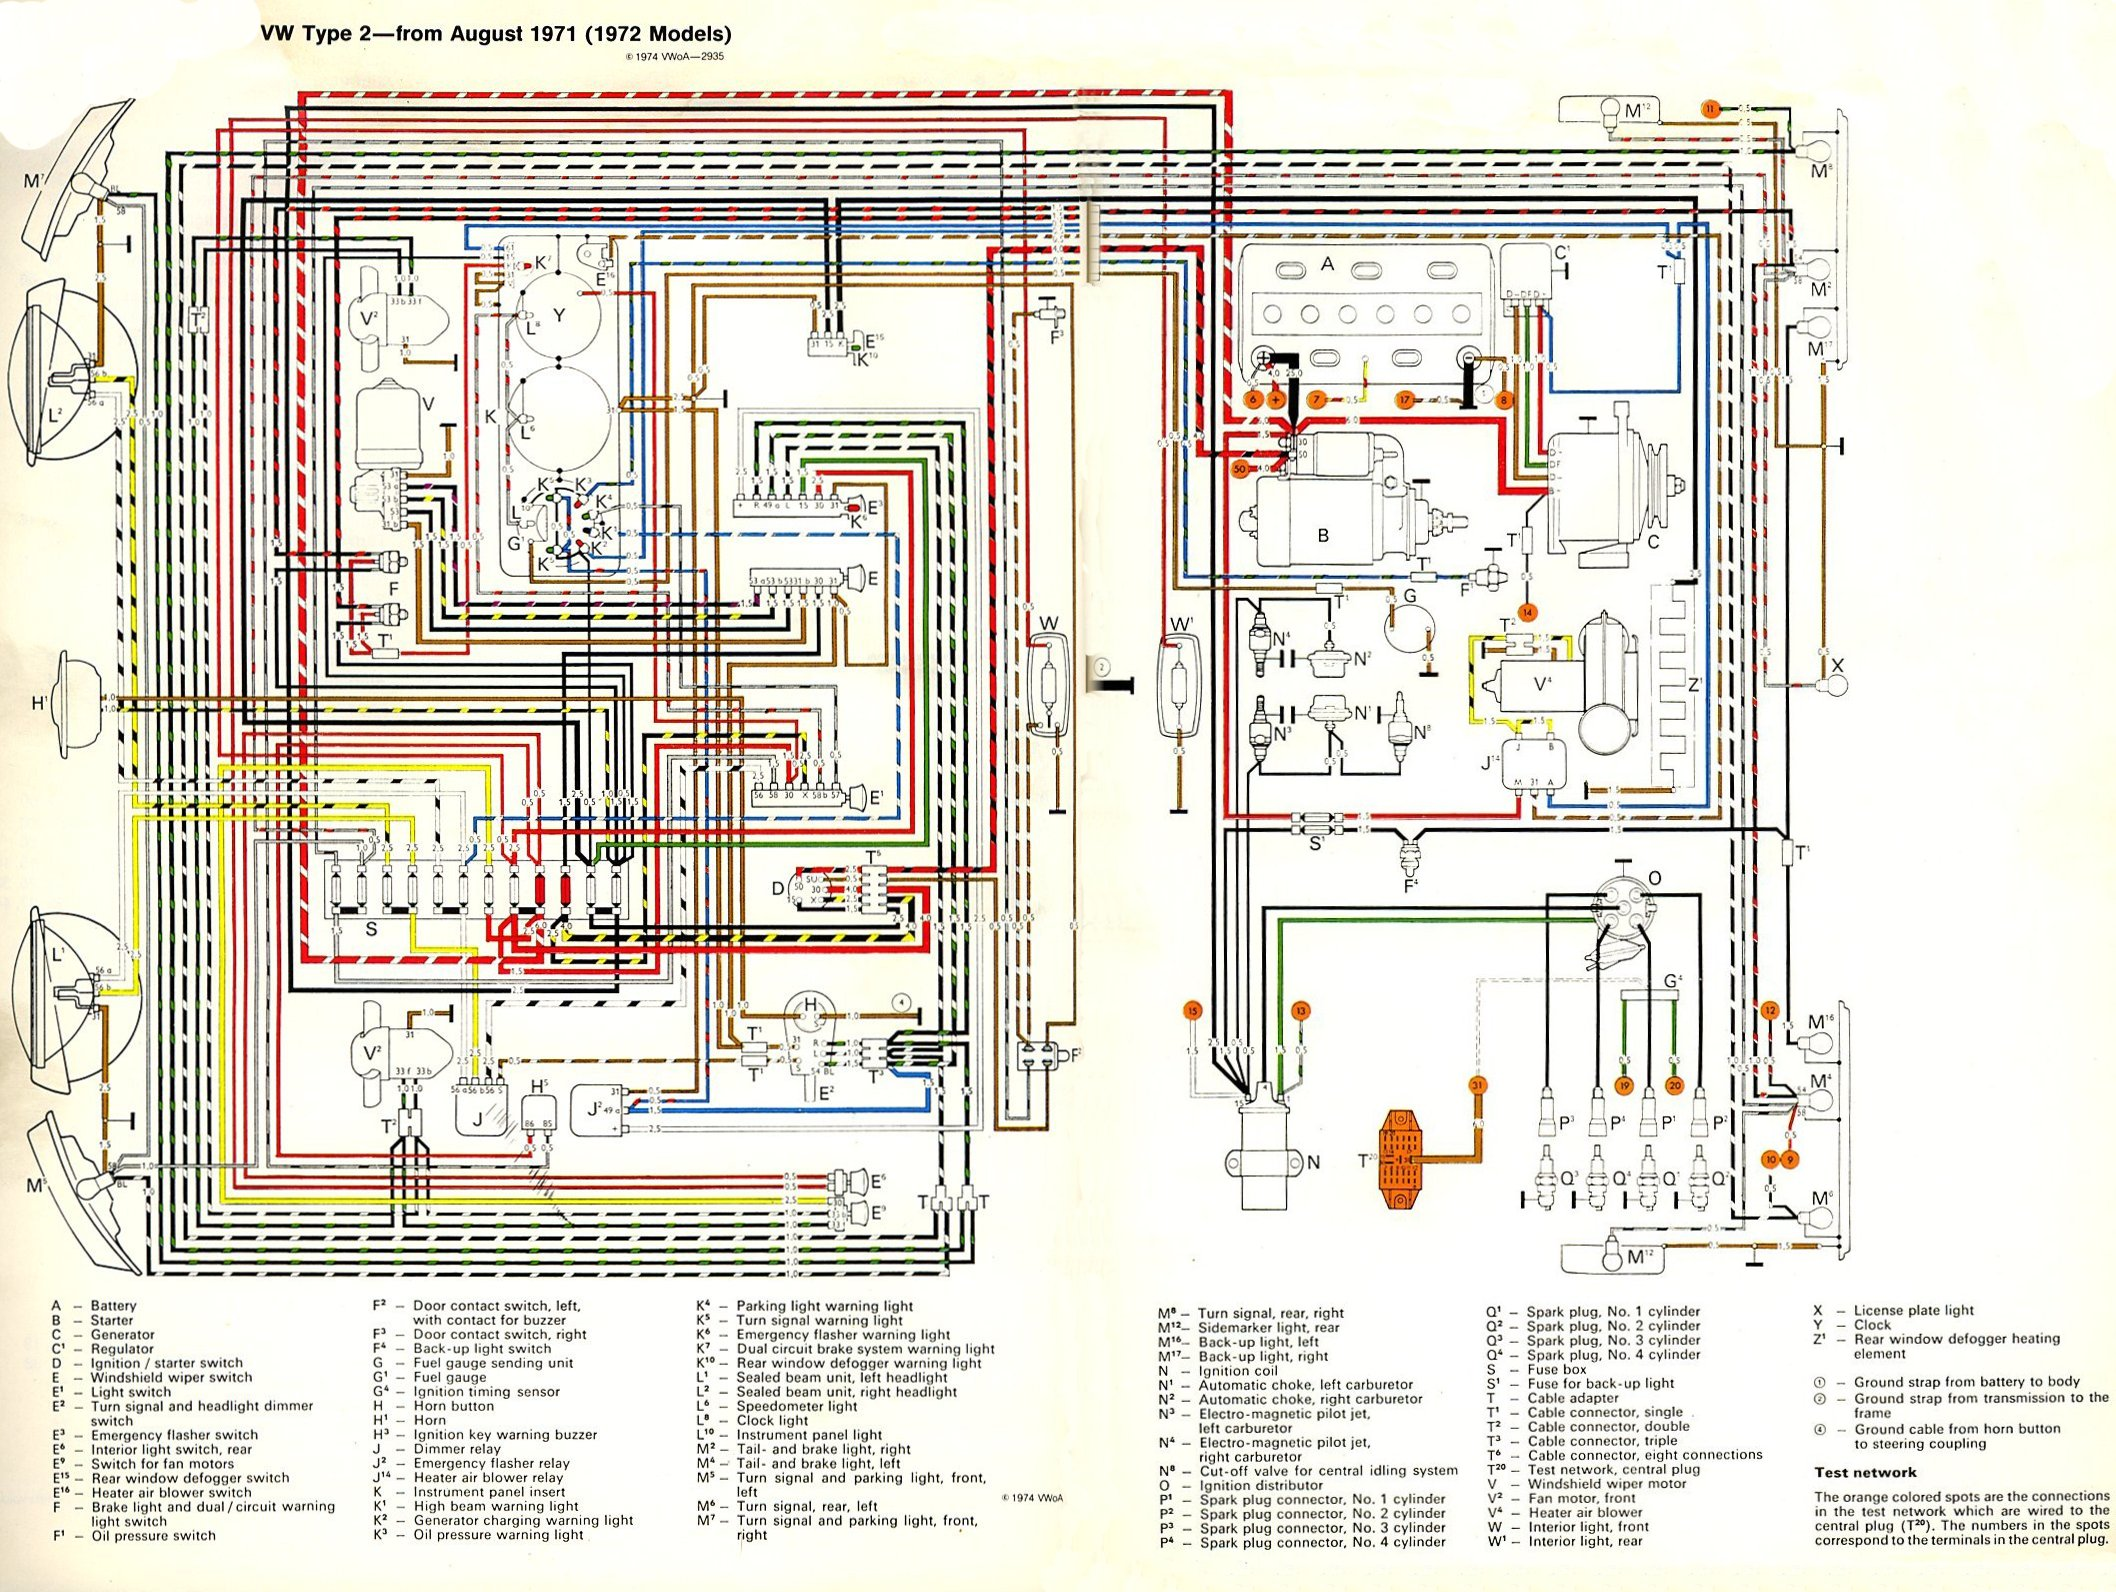 bus_1972_wiring 1972 corvette wiring diagram 1972 corvette ac wiring diagram Wiring Harness Diagram at metegol.co